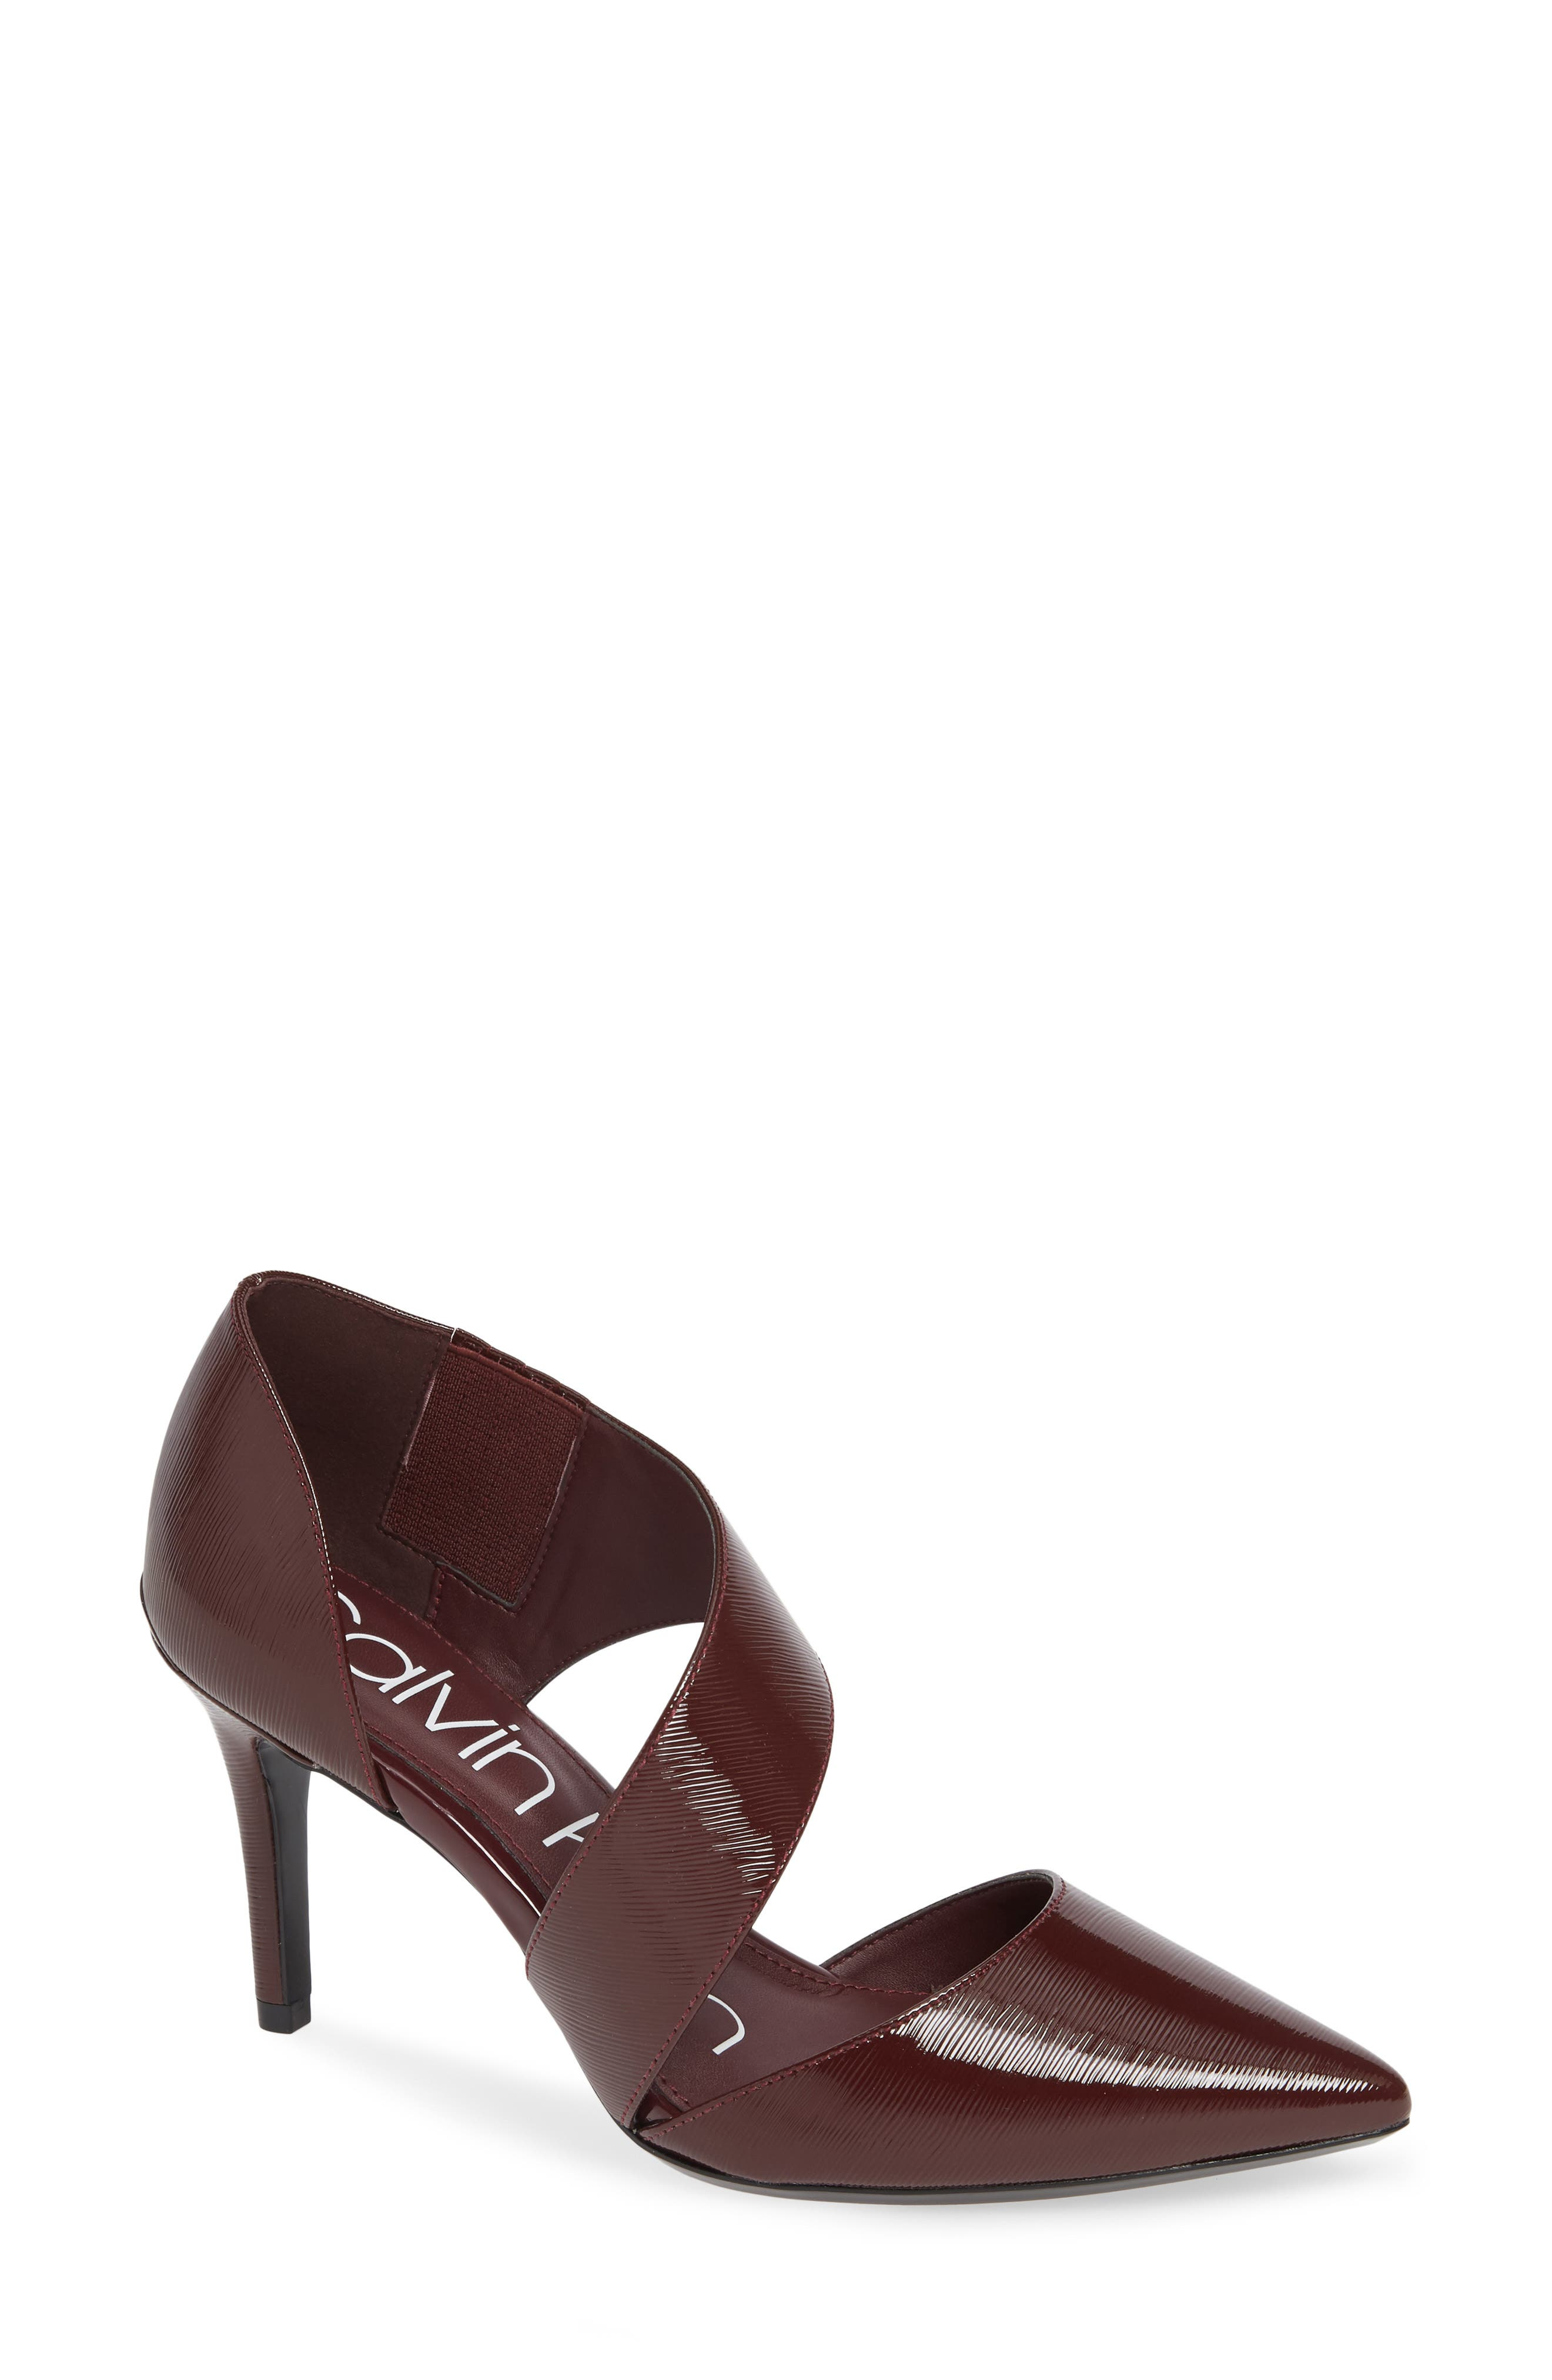 CALVIN KLEIN,                             'Gella' Pointy Toe Pump,                             Main thumbnail 1, color,                             AMETHYST PATENT LEATHER